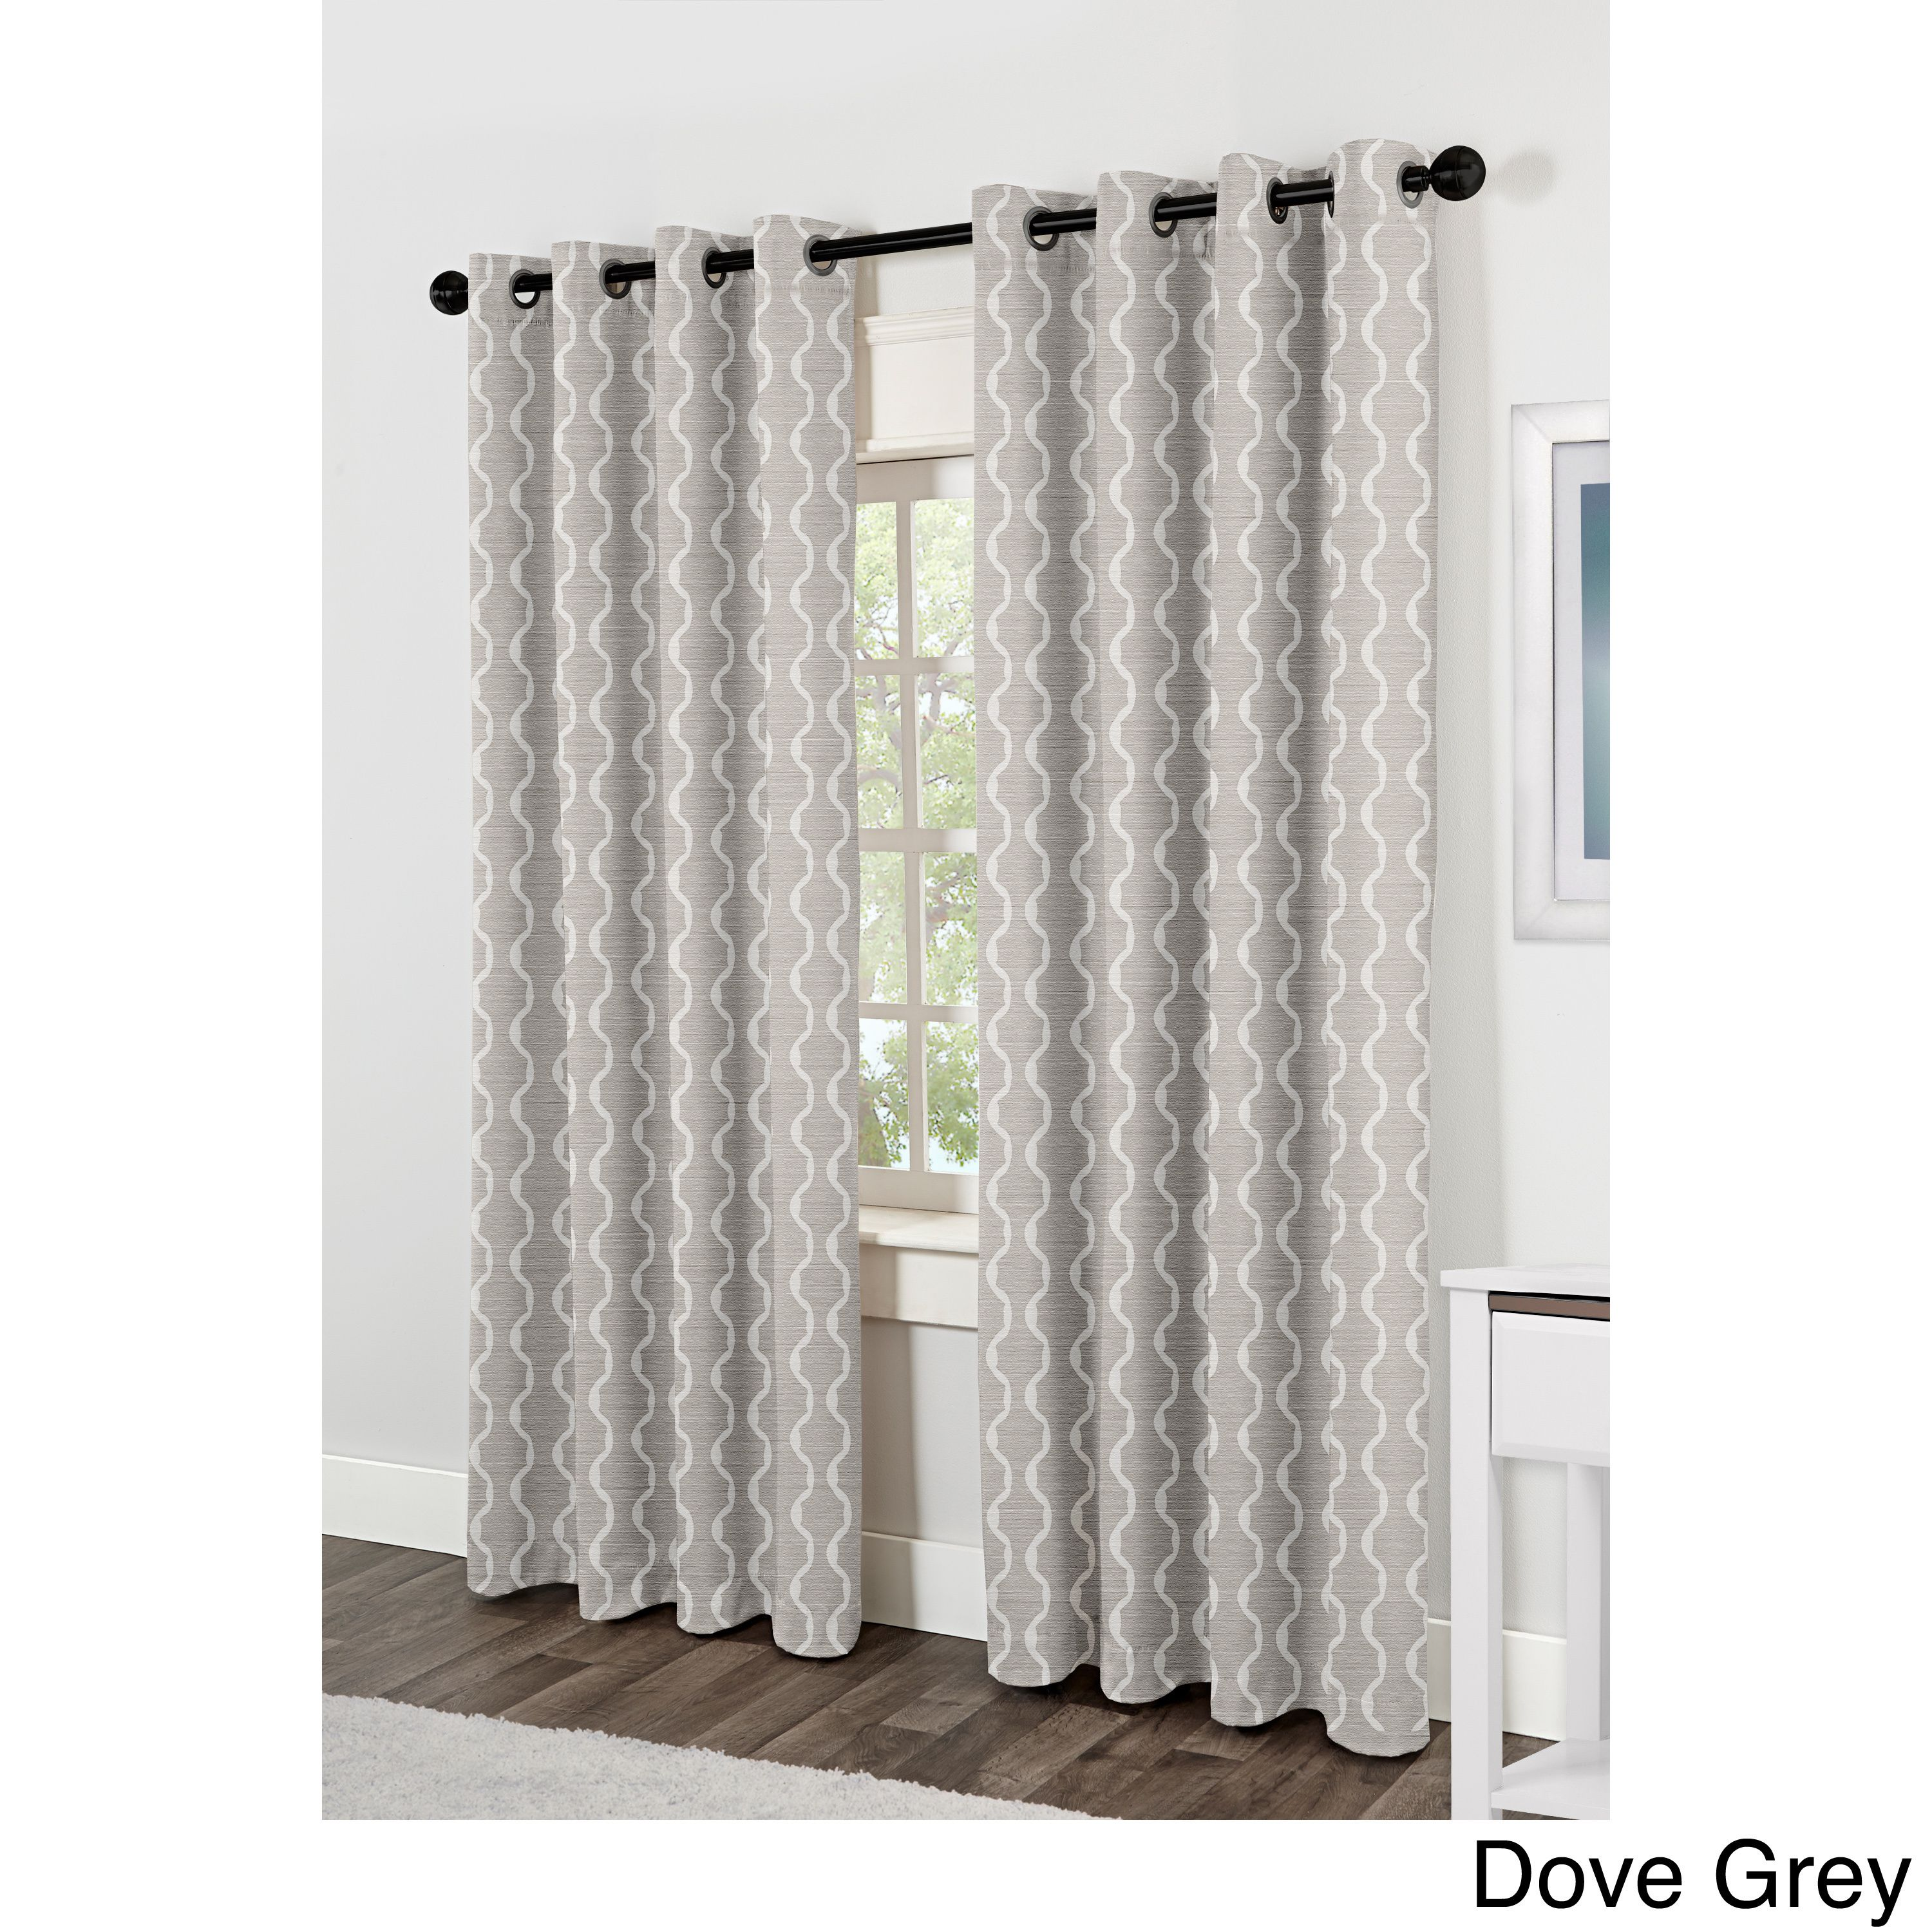 Threshold linen grommet sheer curtain panel product details page - Ati Home Baroque Jacquard Grommet Top Curtain Panel Pair By Ati Home